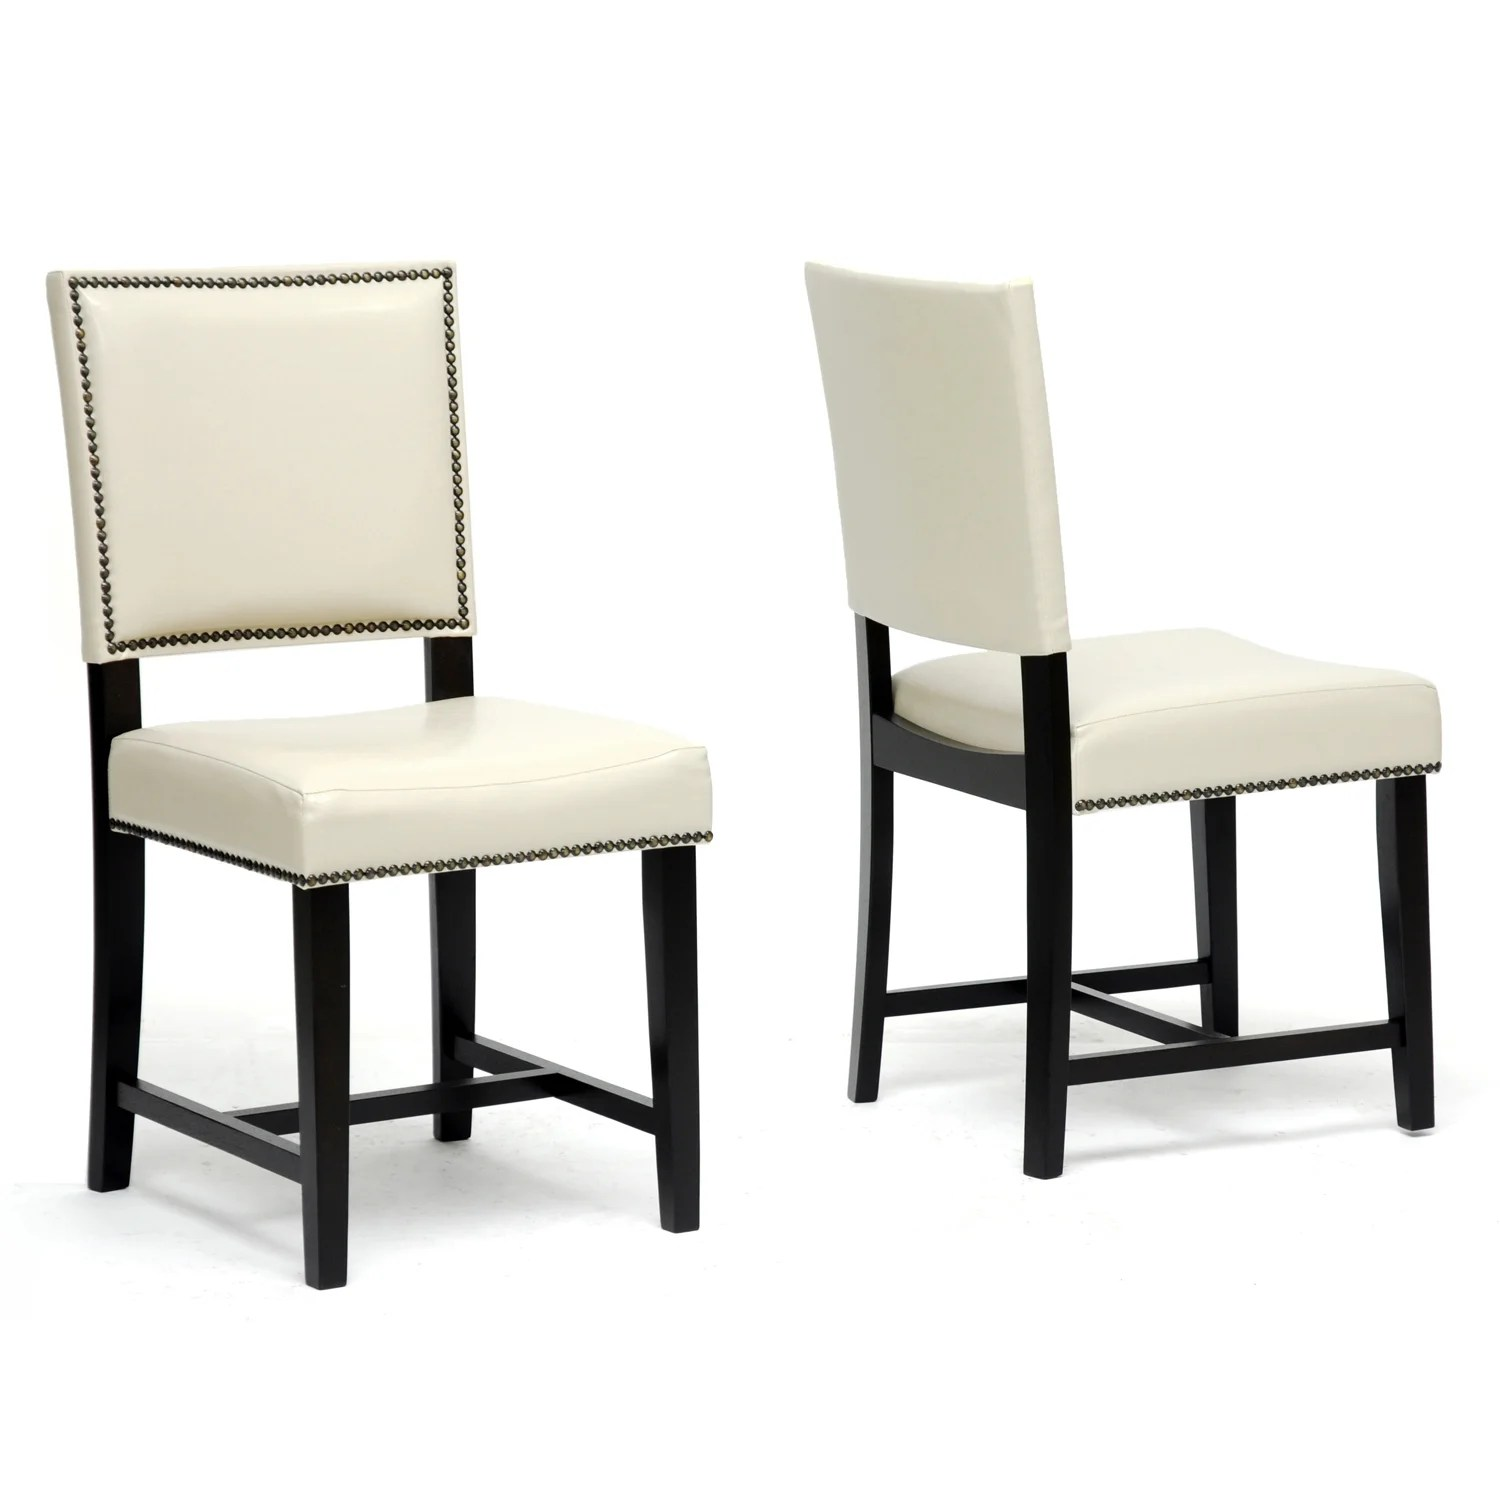 Overstock Chairs Baxton Studio Nottingham Cream Faux Leather Modern Dining